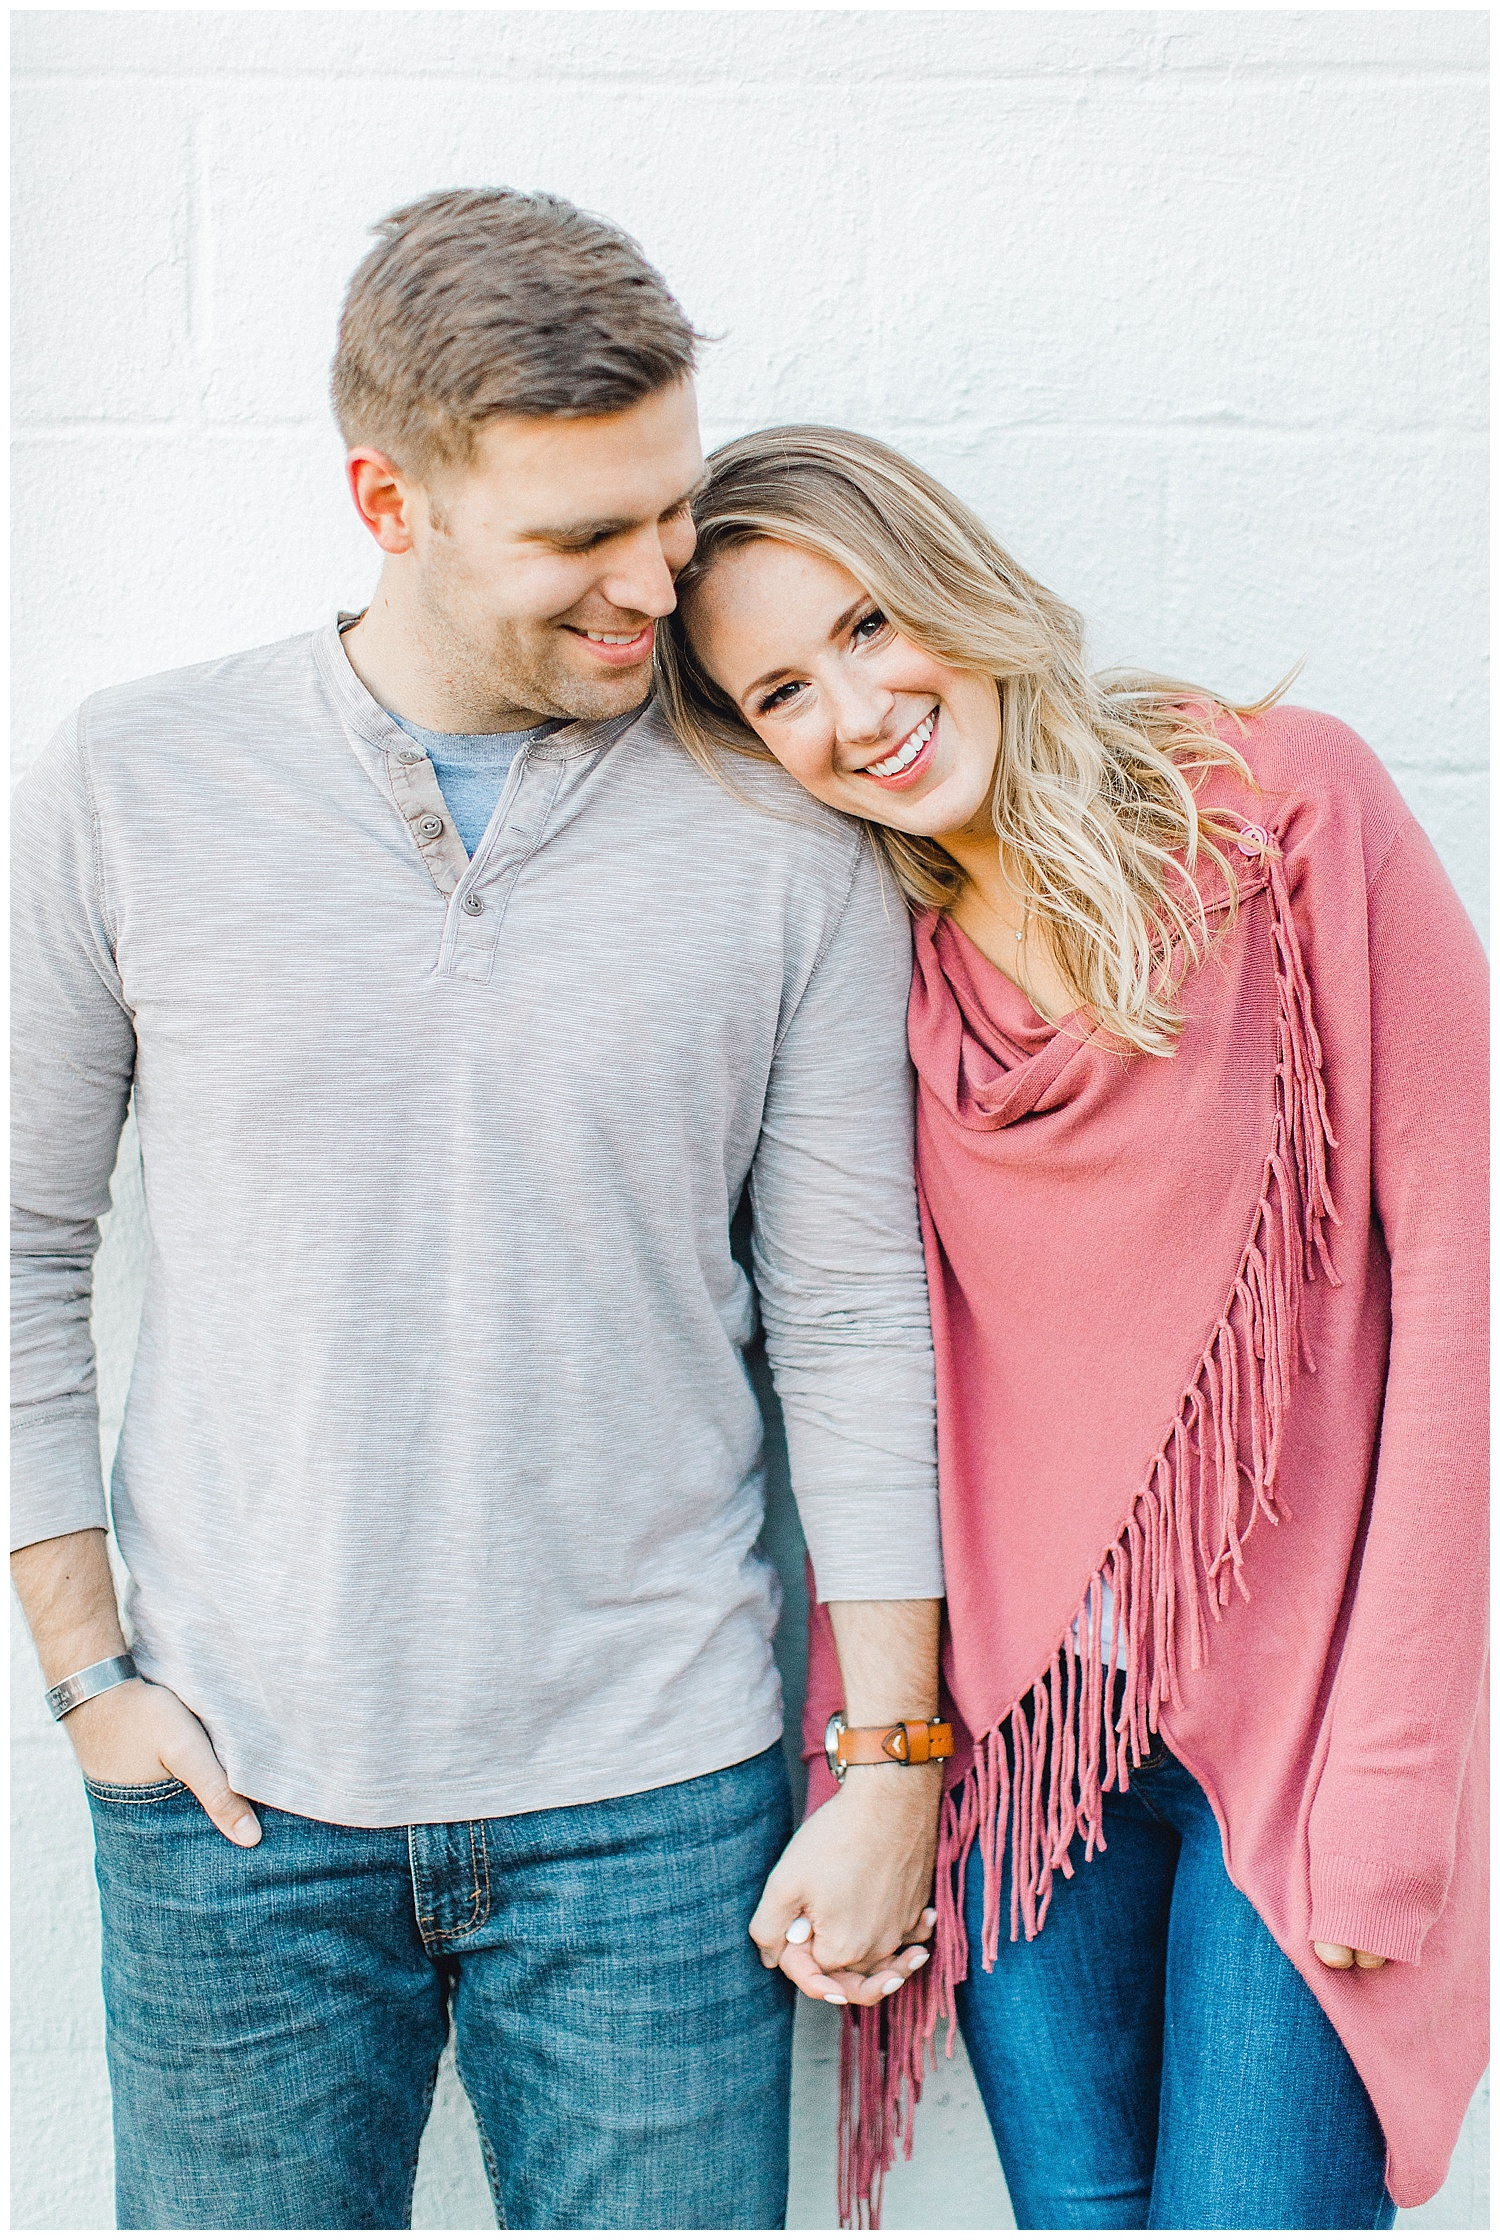 ERC_1061_Downtown Nashville Engagement Session at Barista Parlor | Emma Rose Company Wedding Photographer | Outfit Inspiration for Engagement Session | Kindred Light and Airy Photographer.jpg